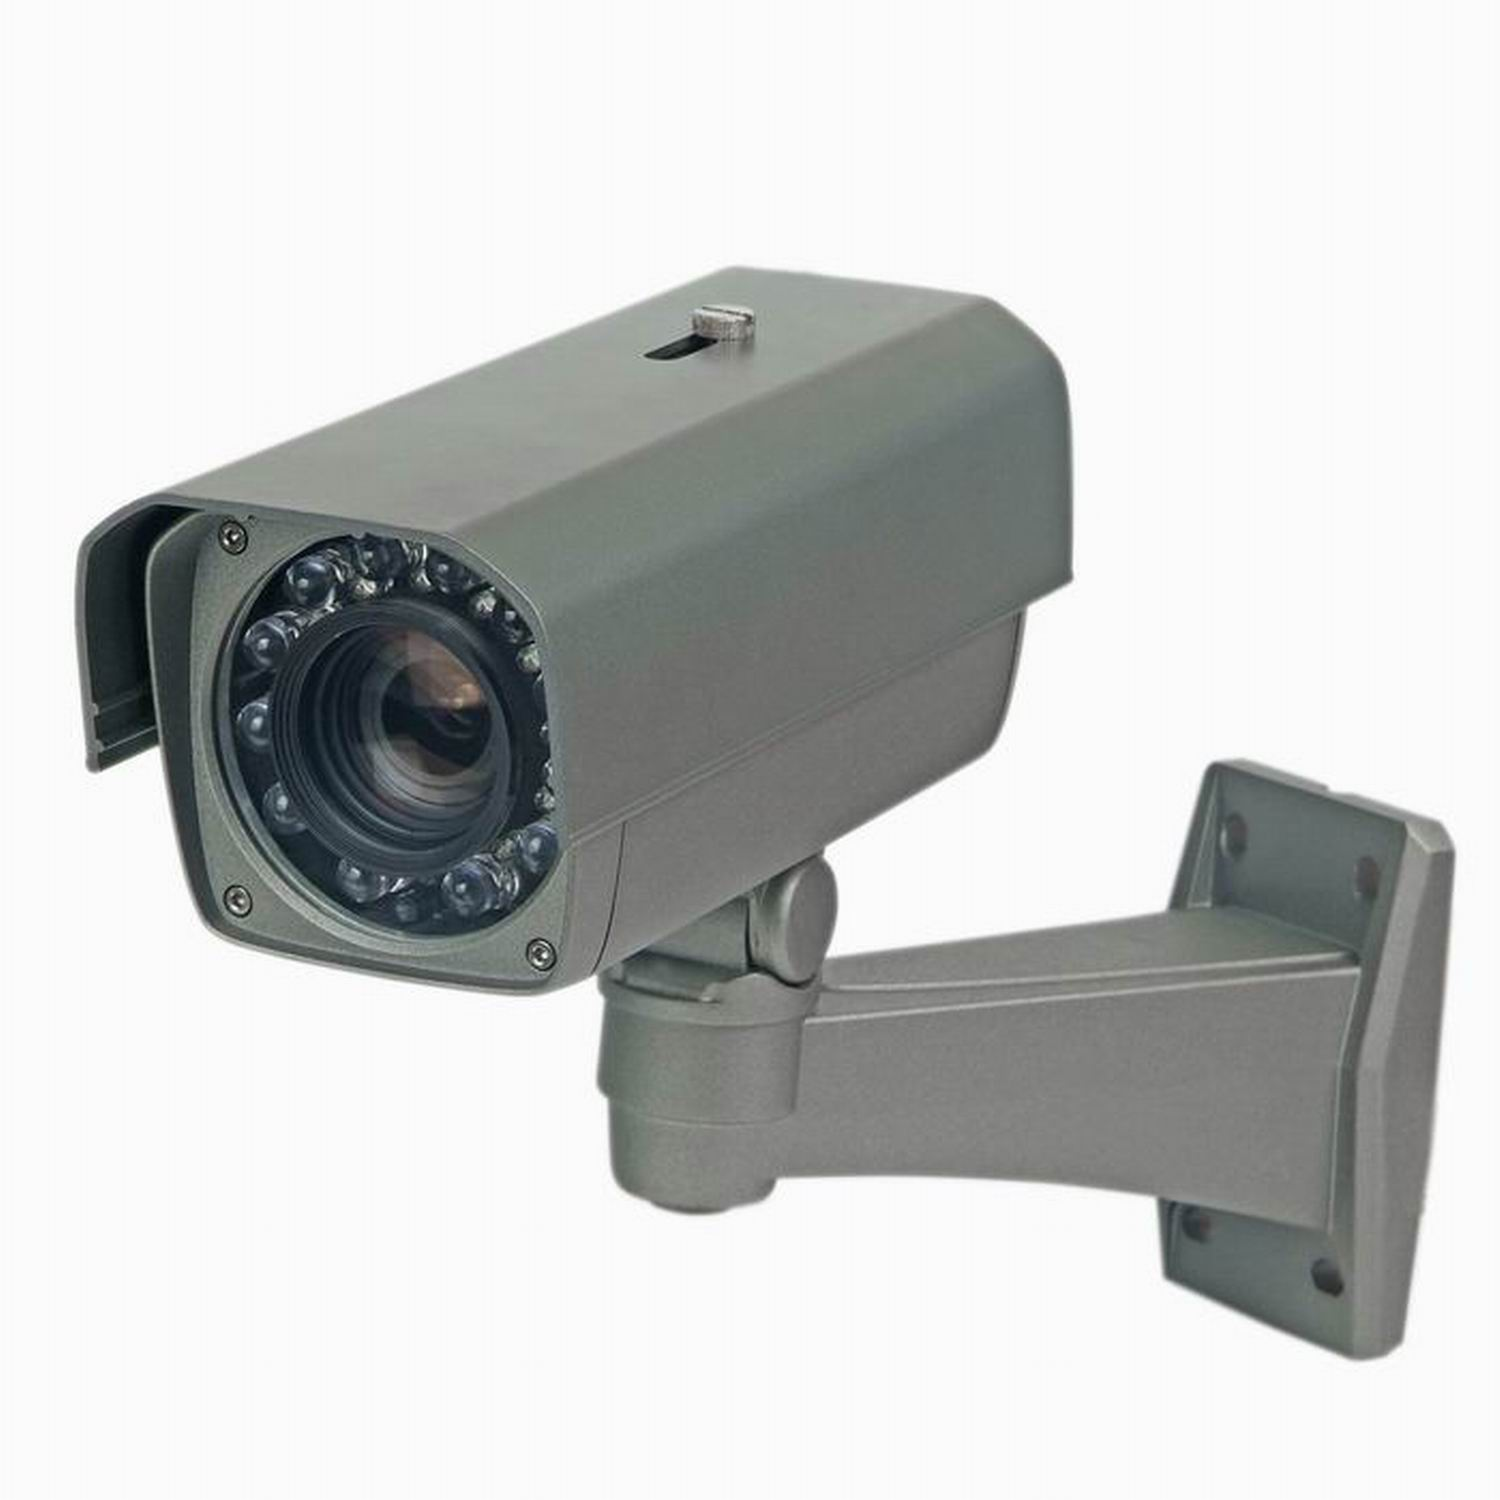 Jyoti Communication: VAT to be removed from CCTV systems ...